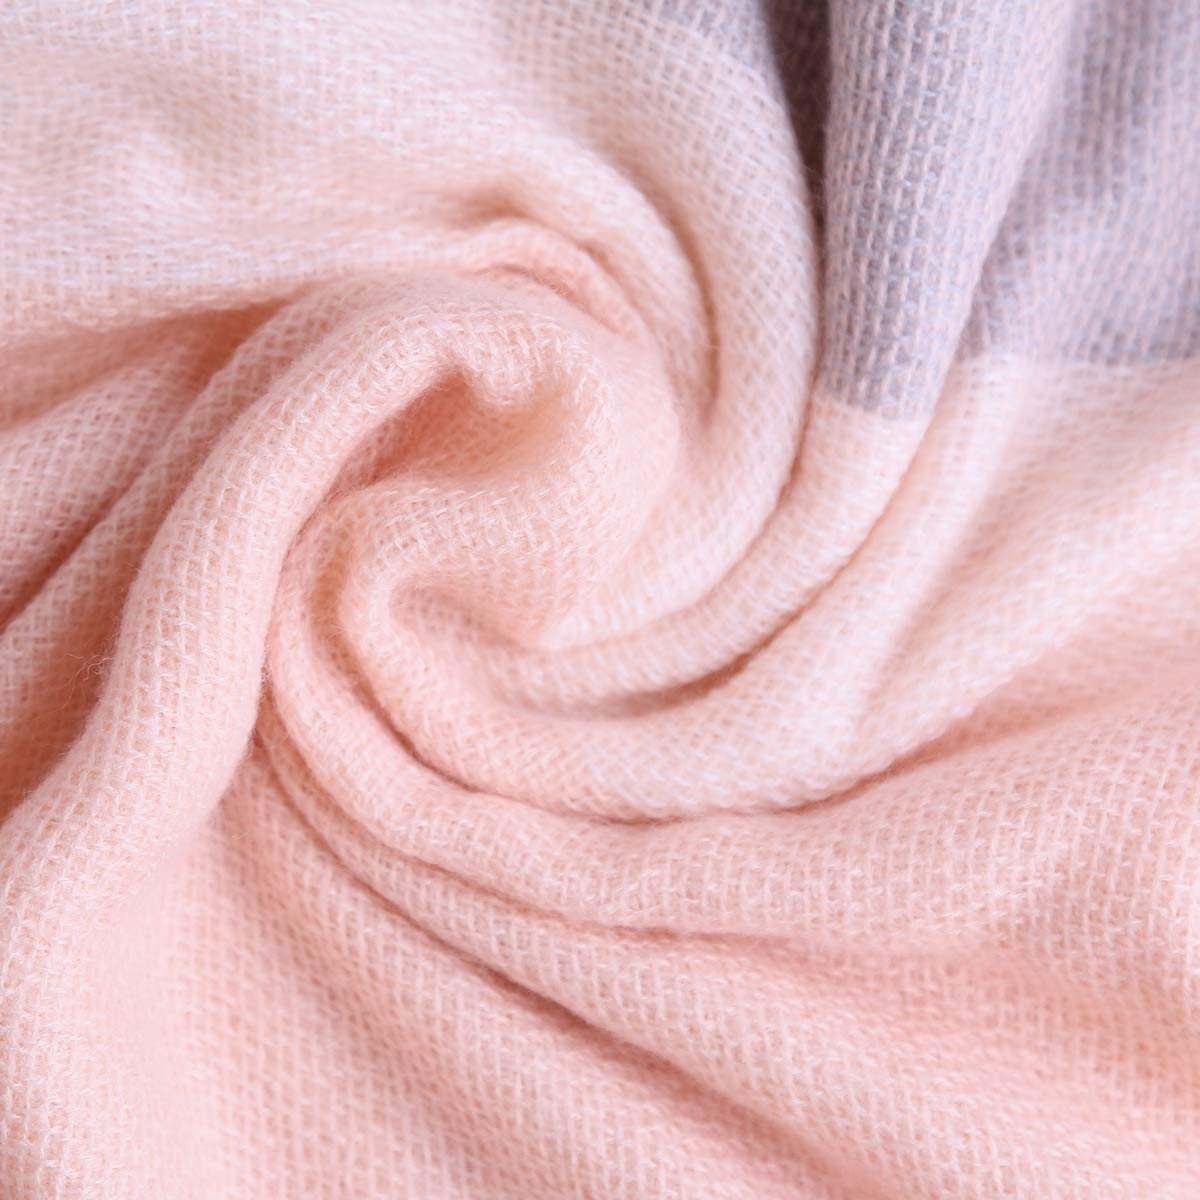 Women Square Plaid Blanket Scarf Shawl for Winter Wear Oversized Warm Soft Chunky Square Scarf (pink)